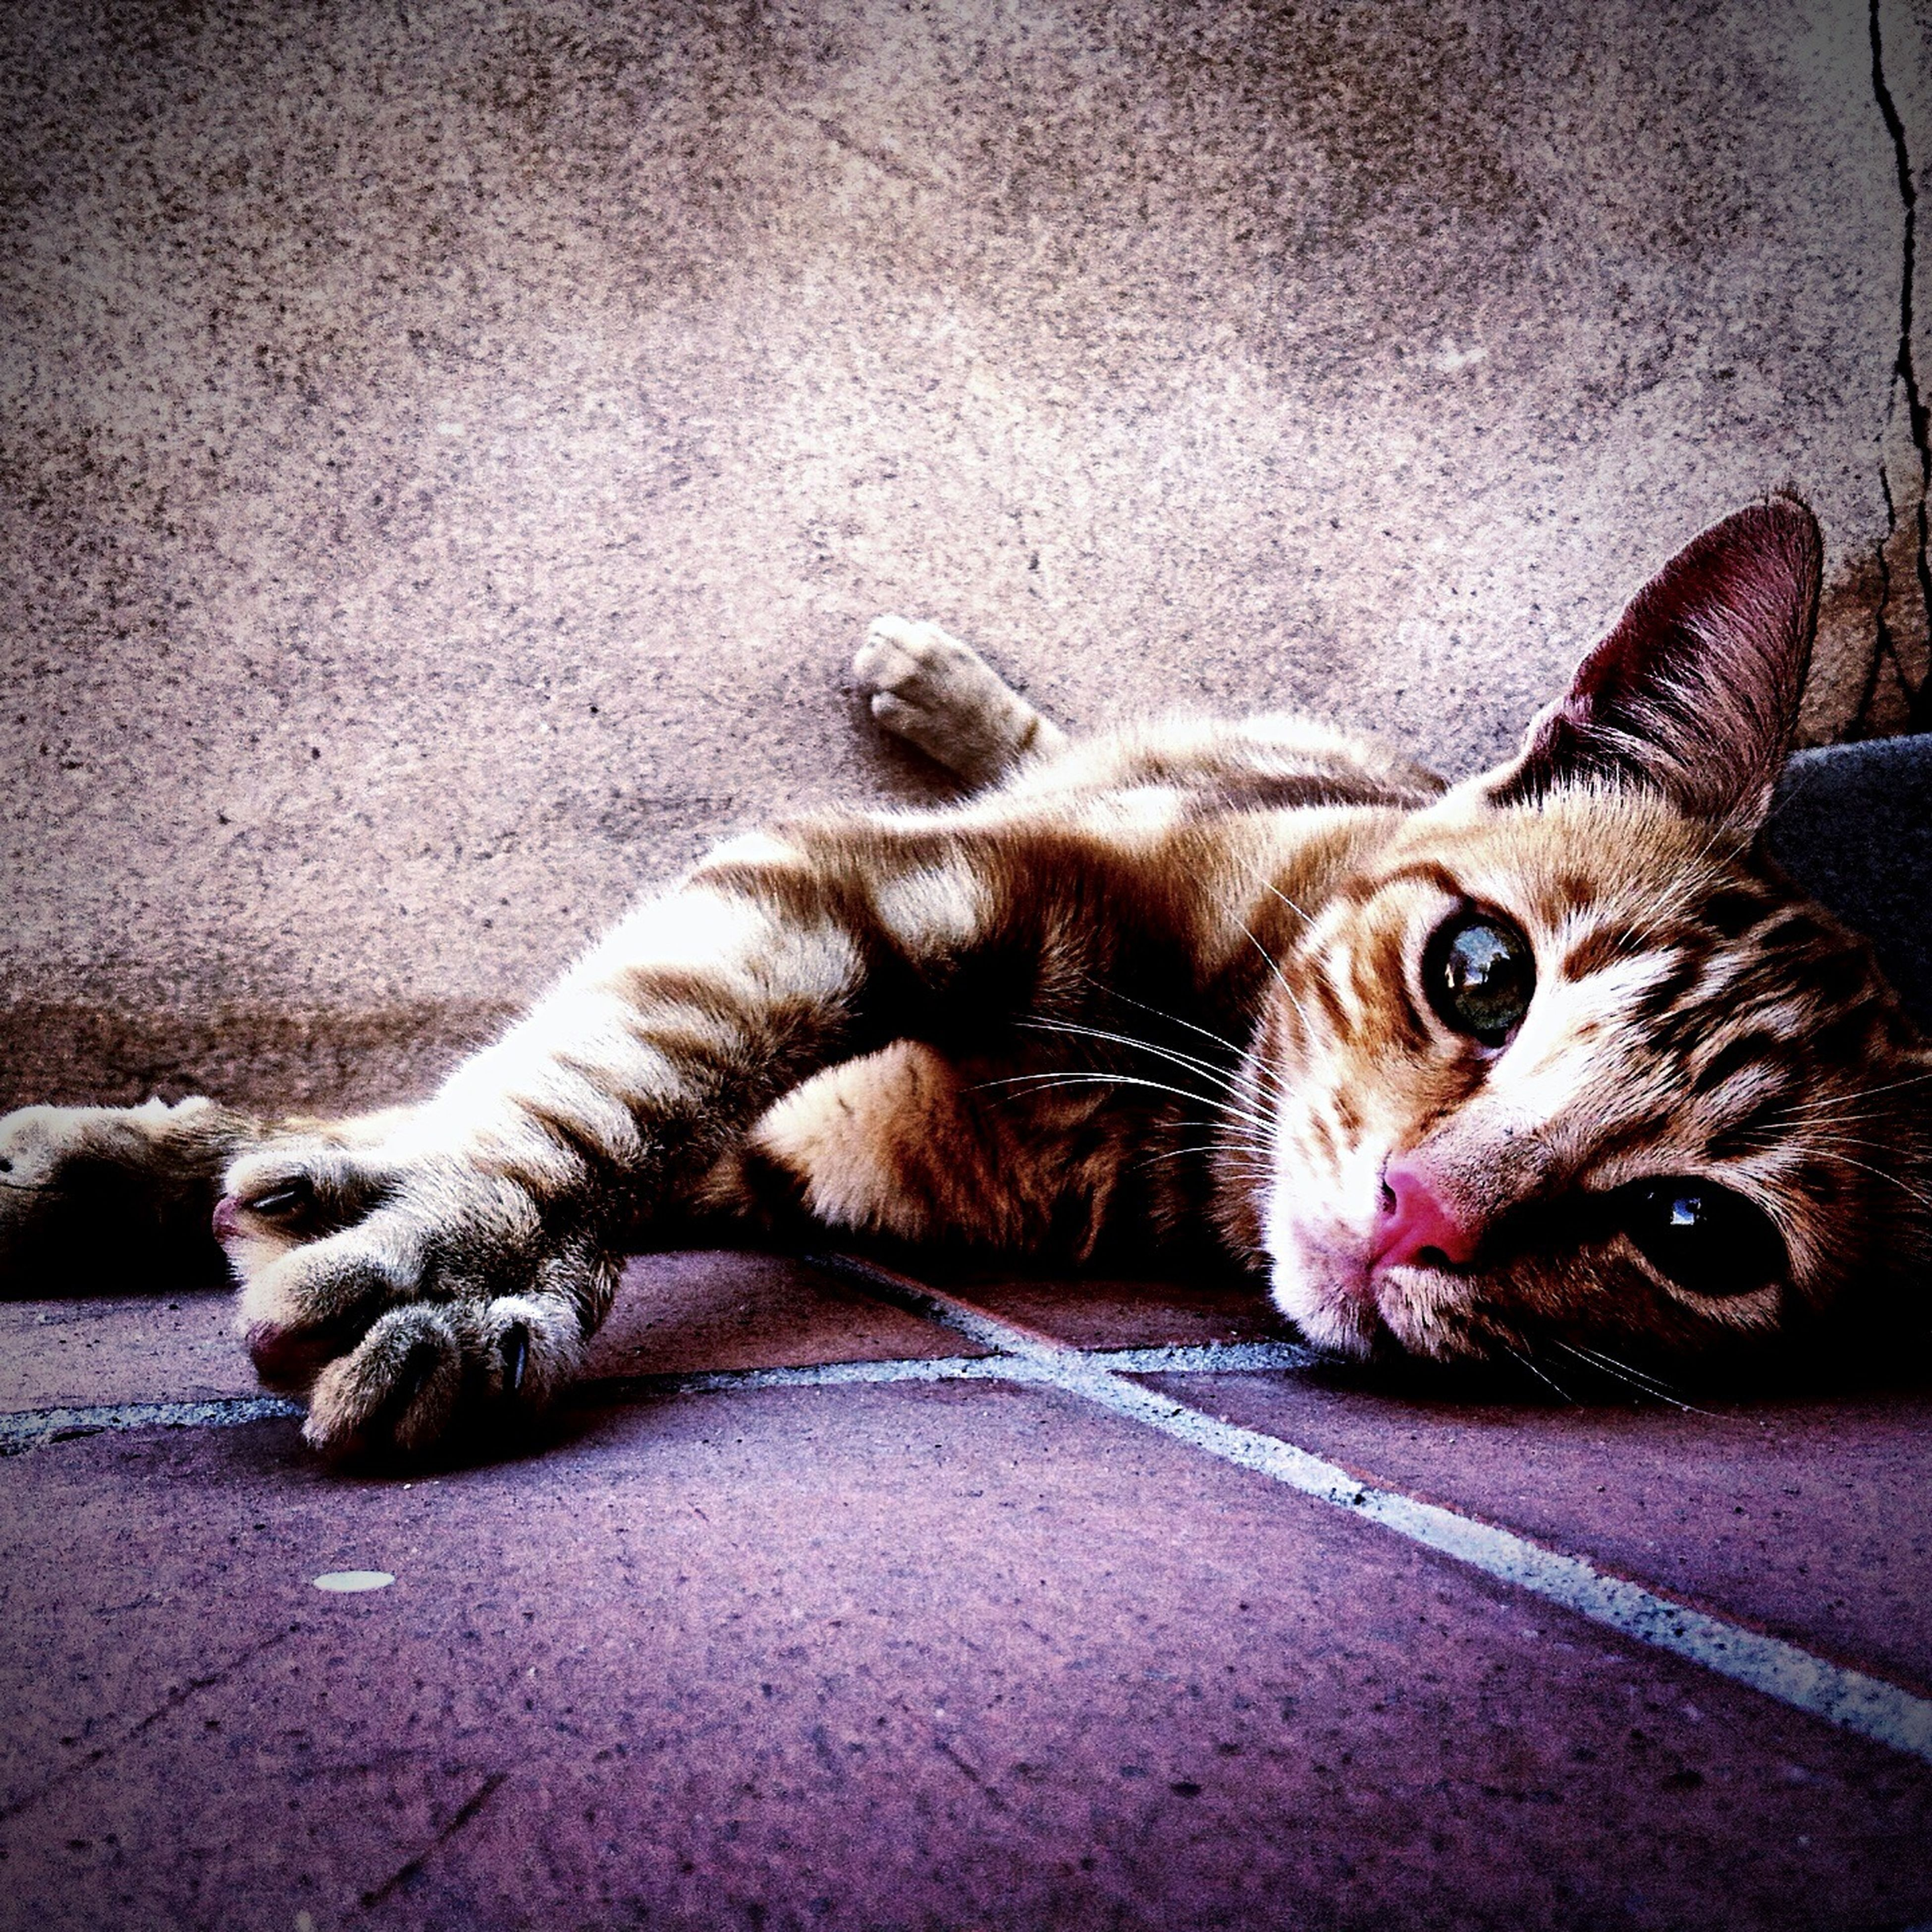 animal themes, domestic cat, pets, one animal, domestic animals, cat, mammal, feline, relaxation, lying down, portrait, looking at camera, resting, whisker, indoors, high angle view, street, wall - building feature, two animals, relaxing